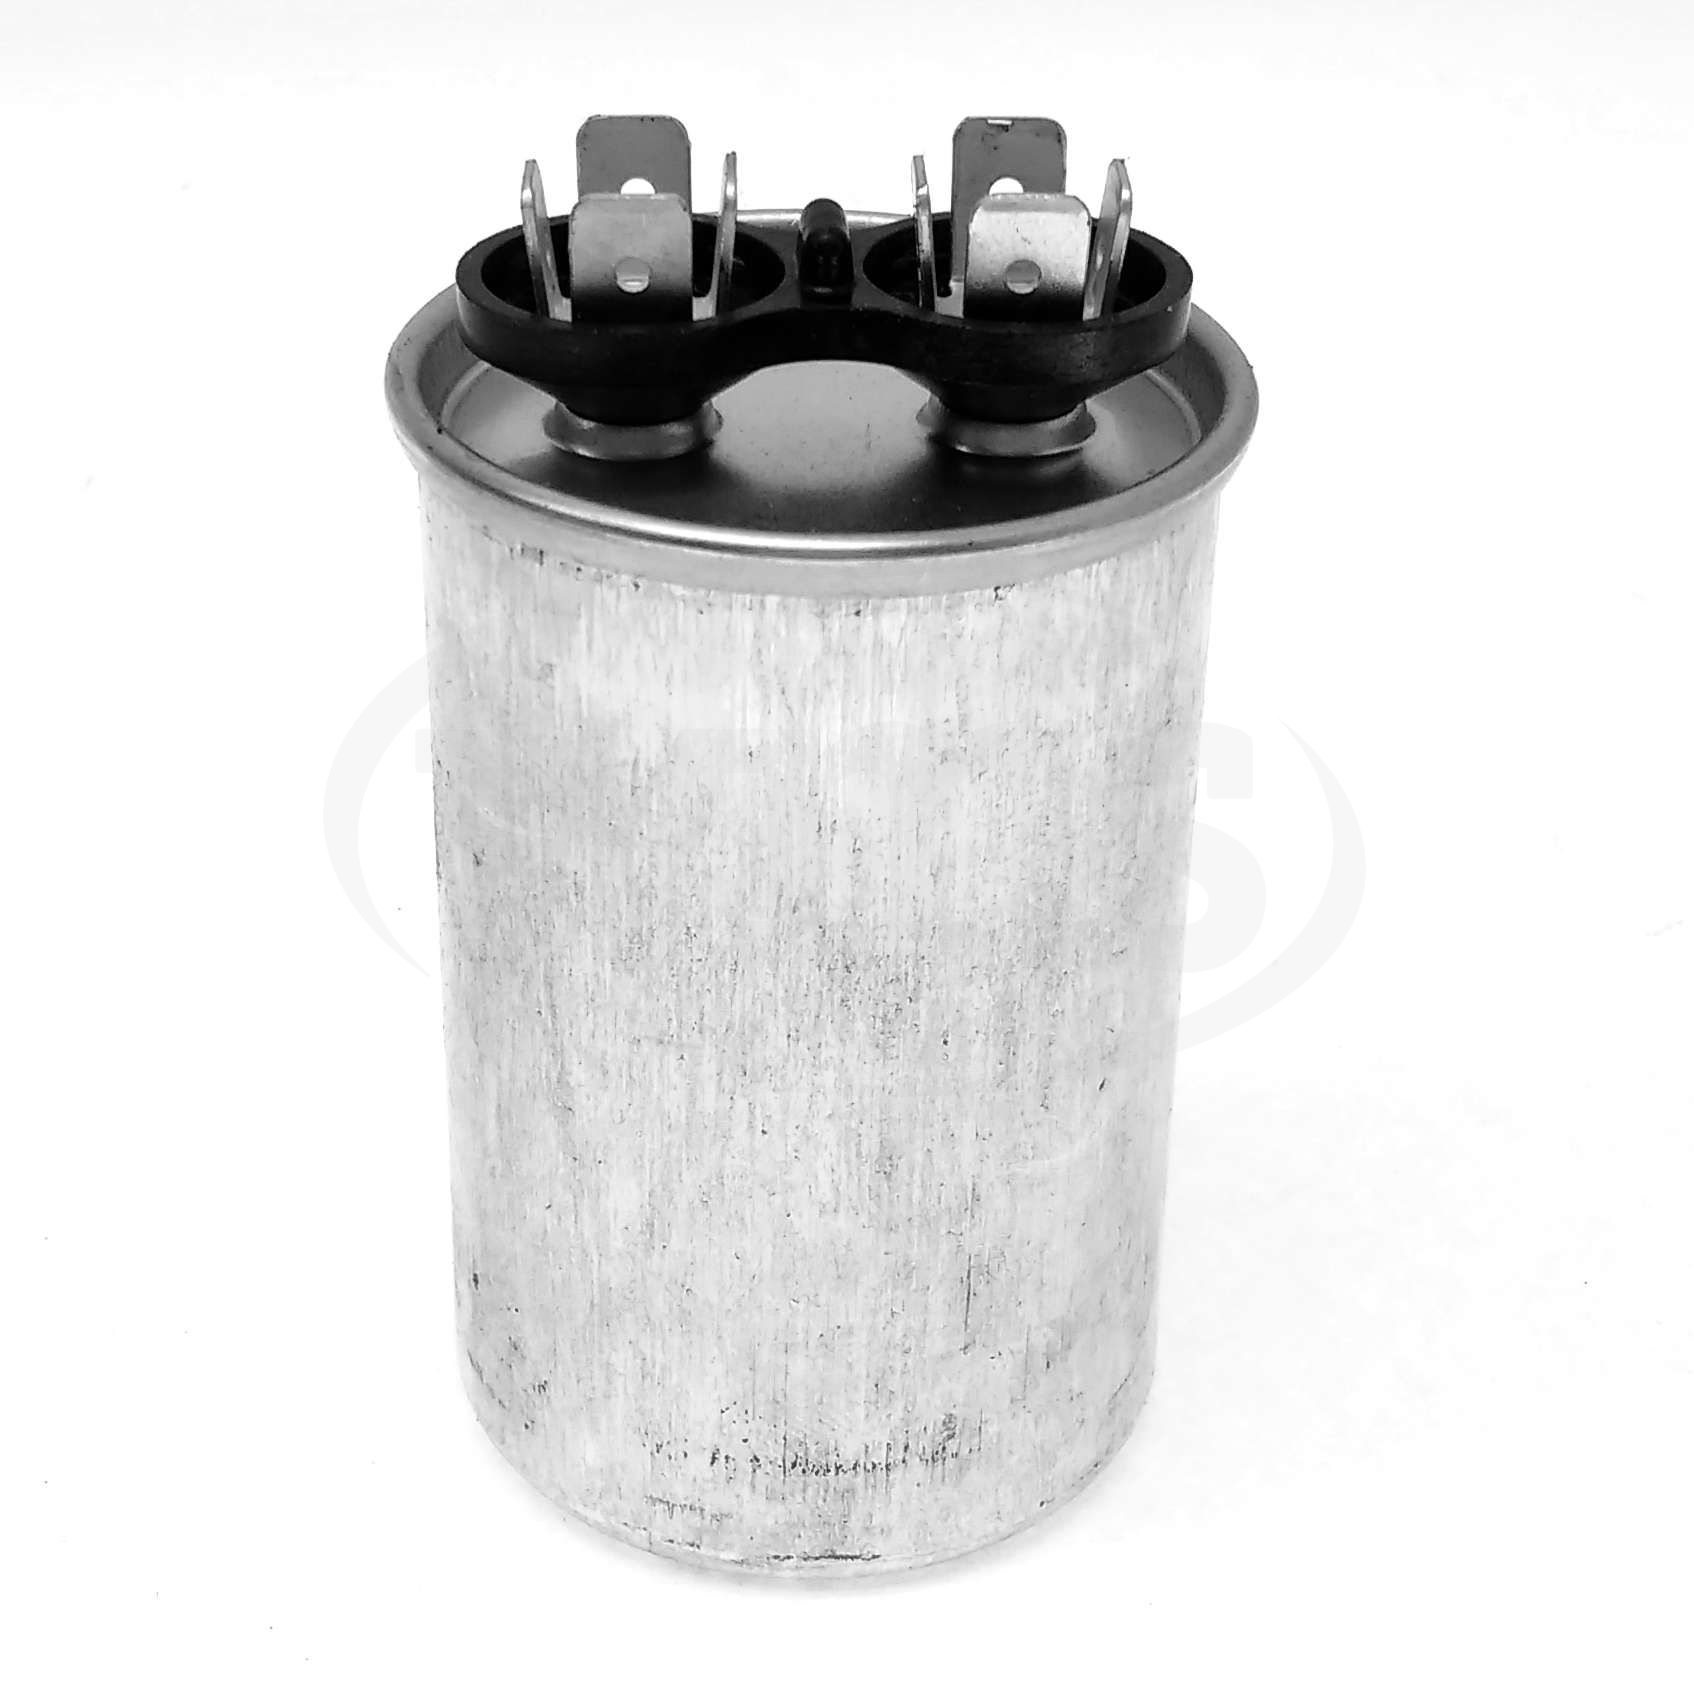 RD-20-440 Vanguard Run Capacitor, 440 Vac, 20 µF 2